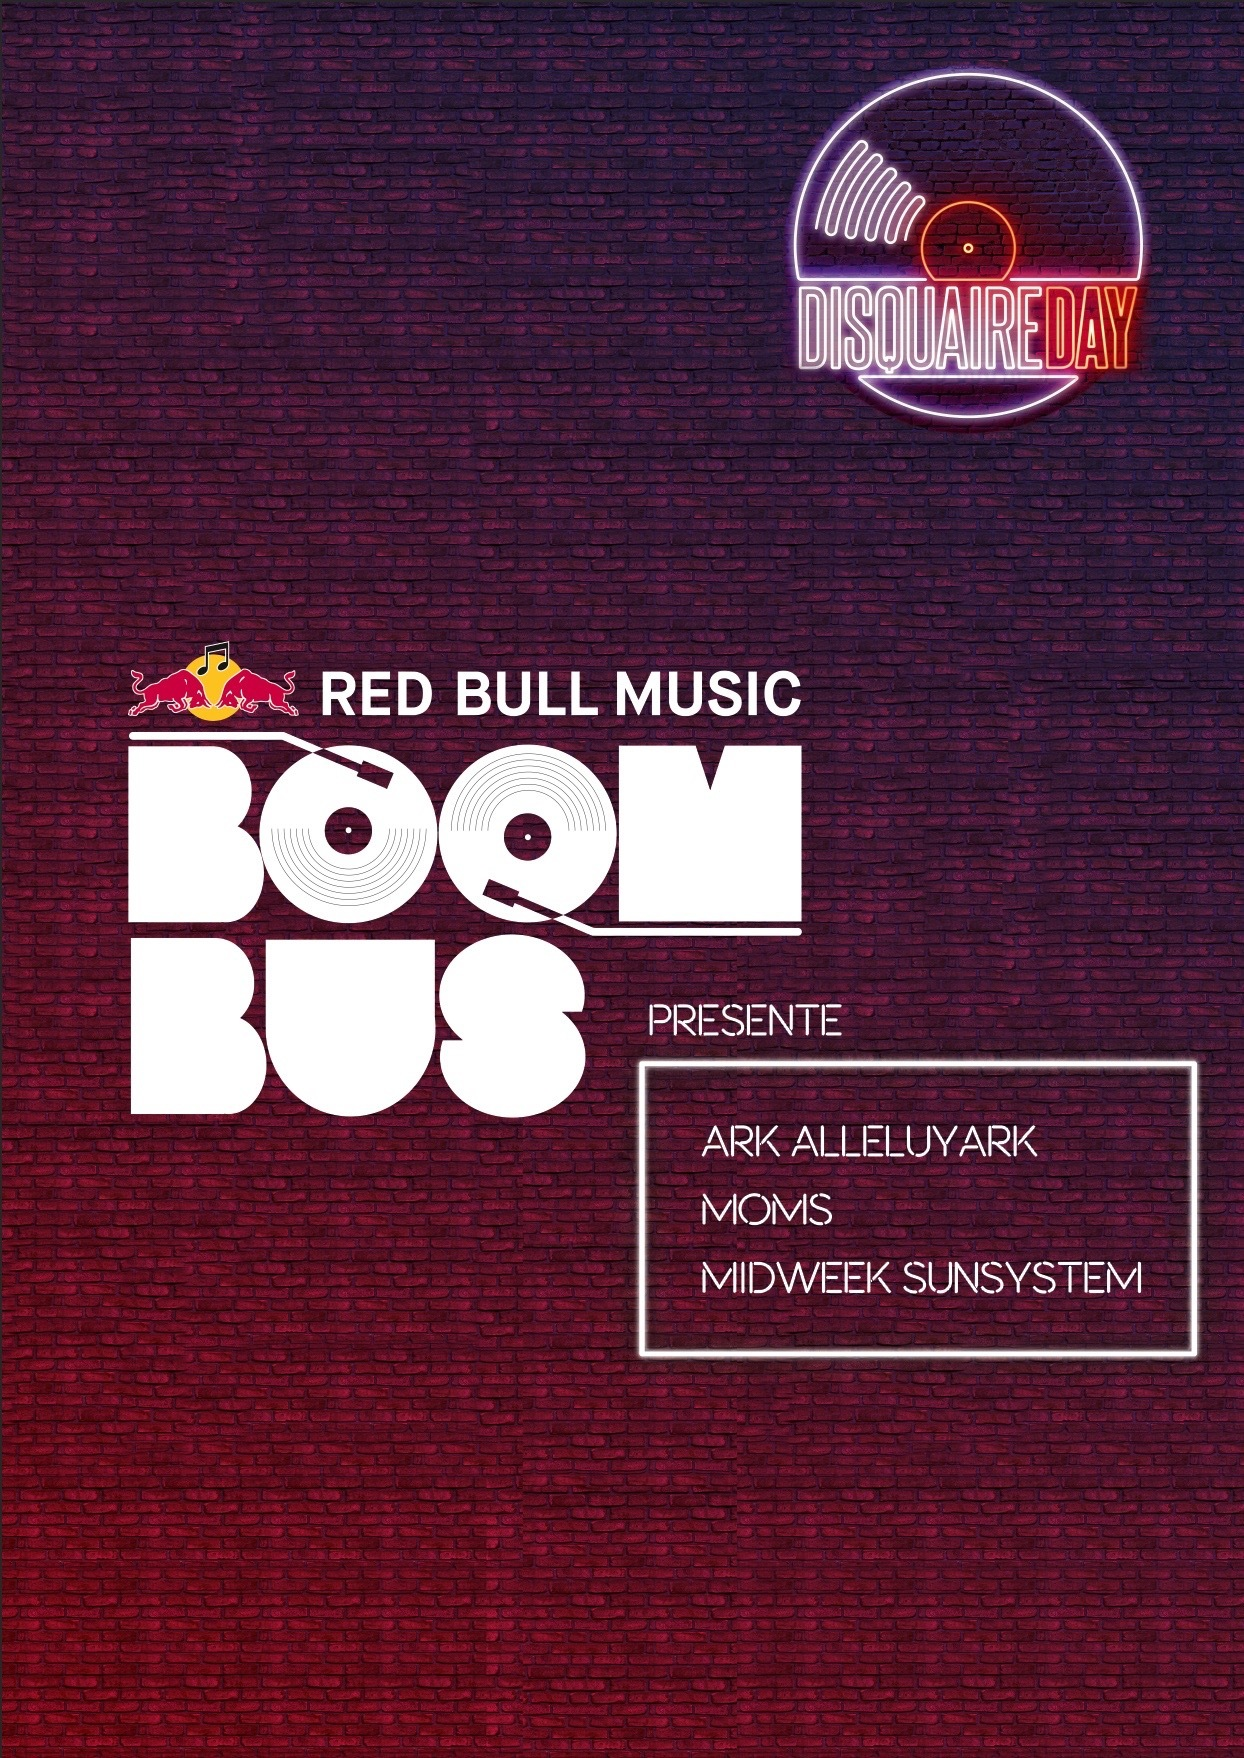 DISQUAIRE DAY_RED BULL MUSIC BOOM BUS